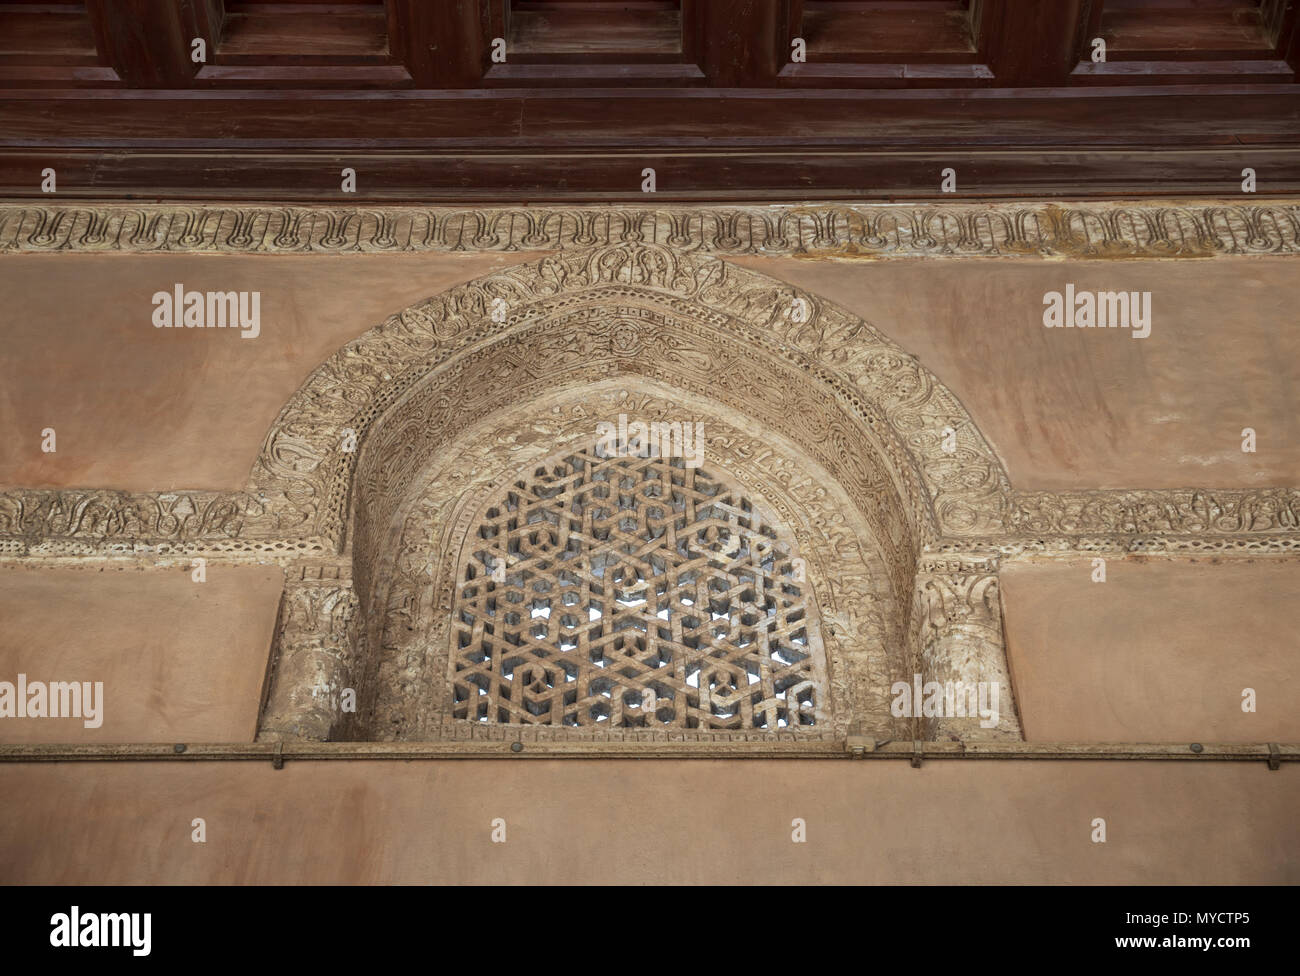 Perforated arched stucco window decorated with geometrical patterns and calligraphy at Ibn Tulun mosque, Old Cairo, Egypt - Stock Image